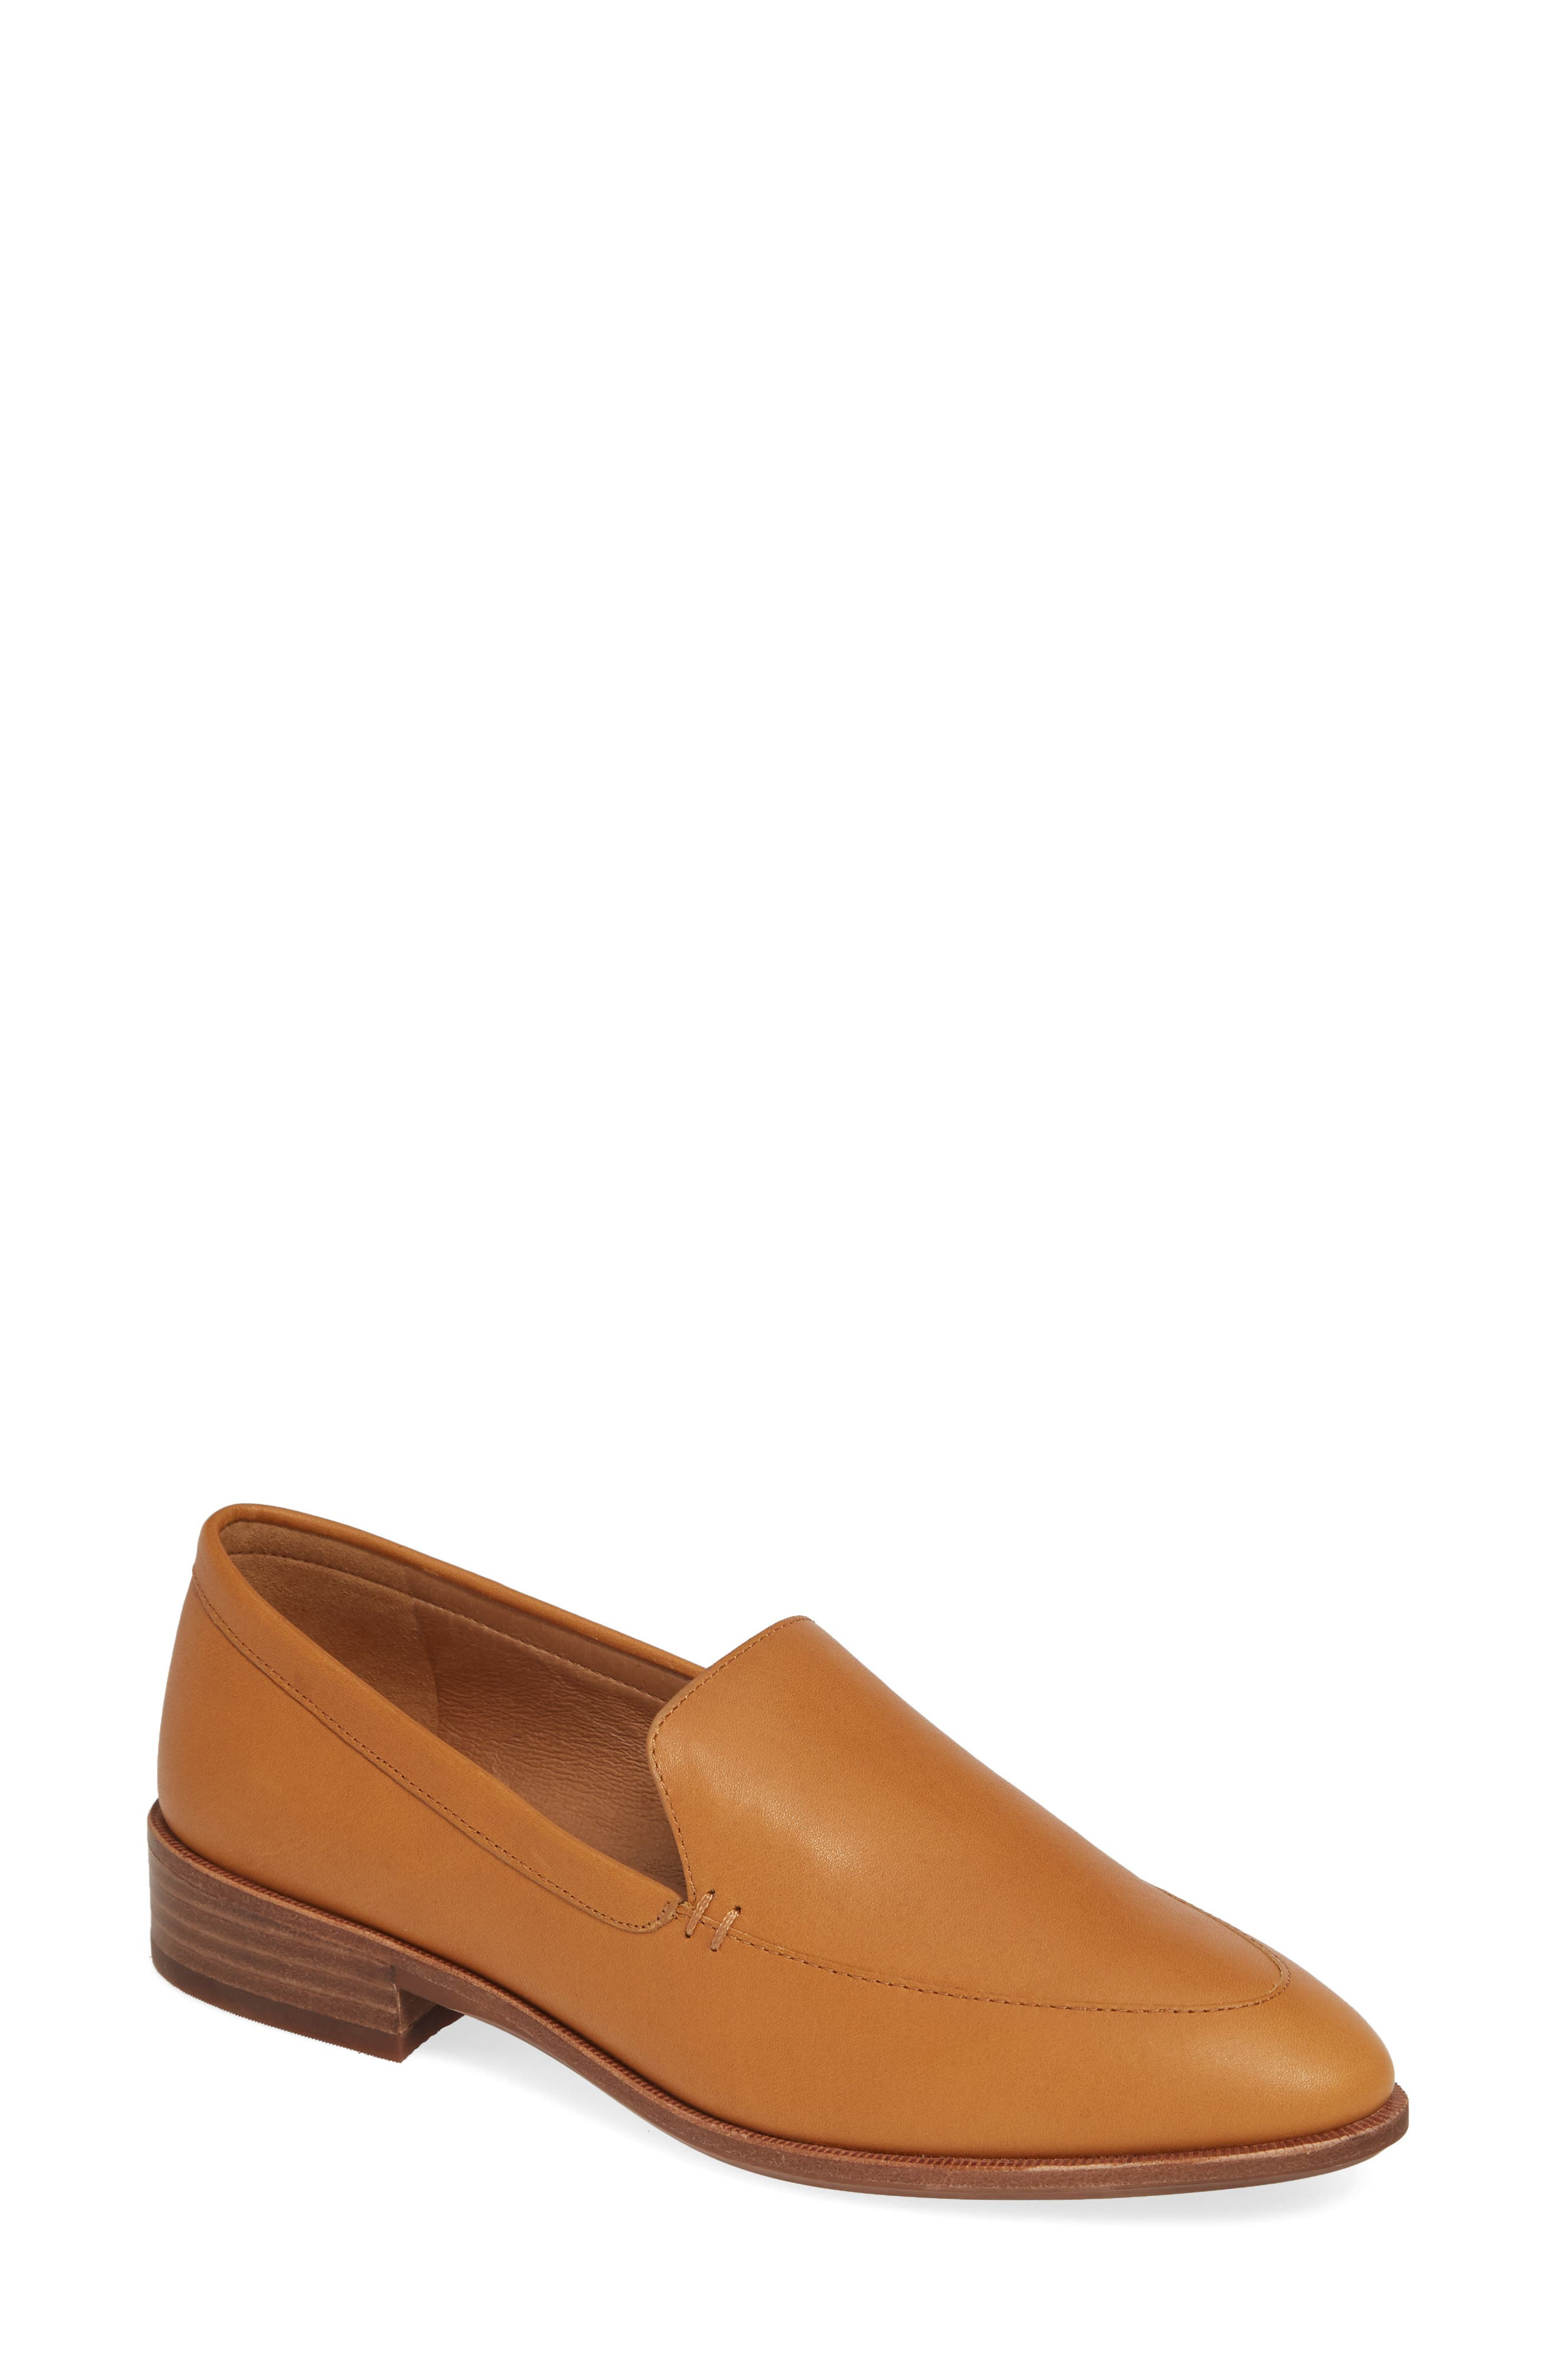 ,                             The Frances Loafer,                             Main thumbnail 24, color,                             200